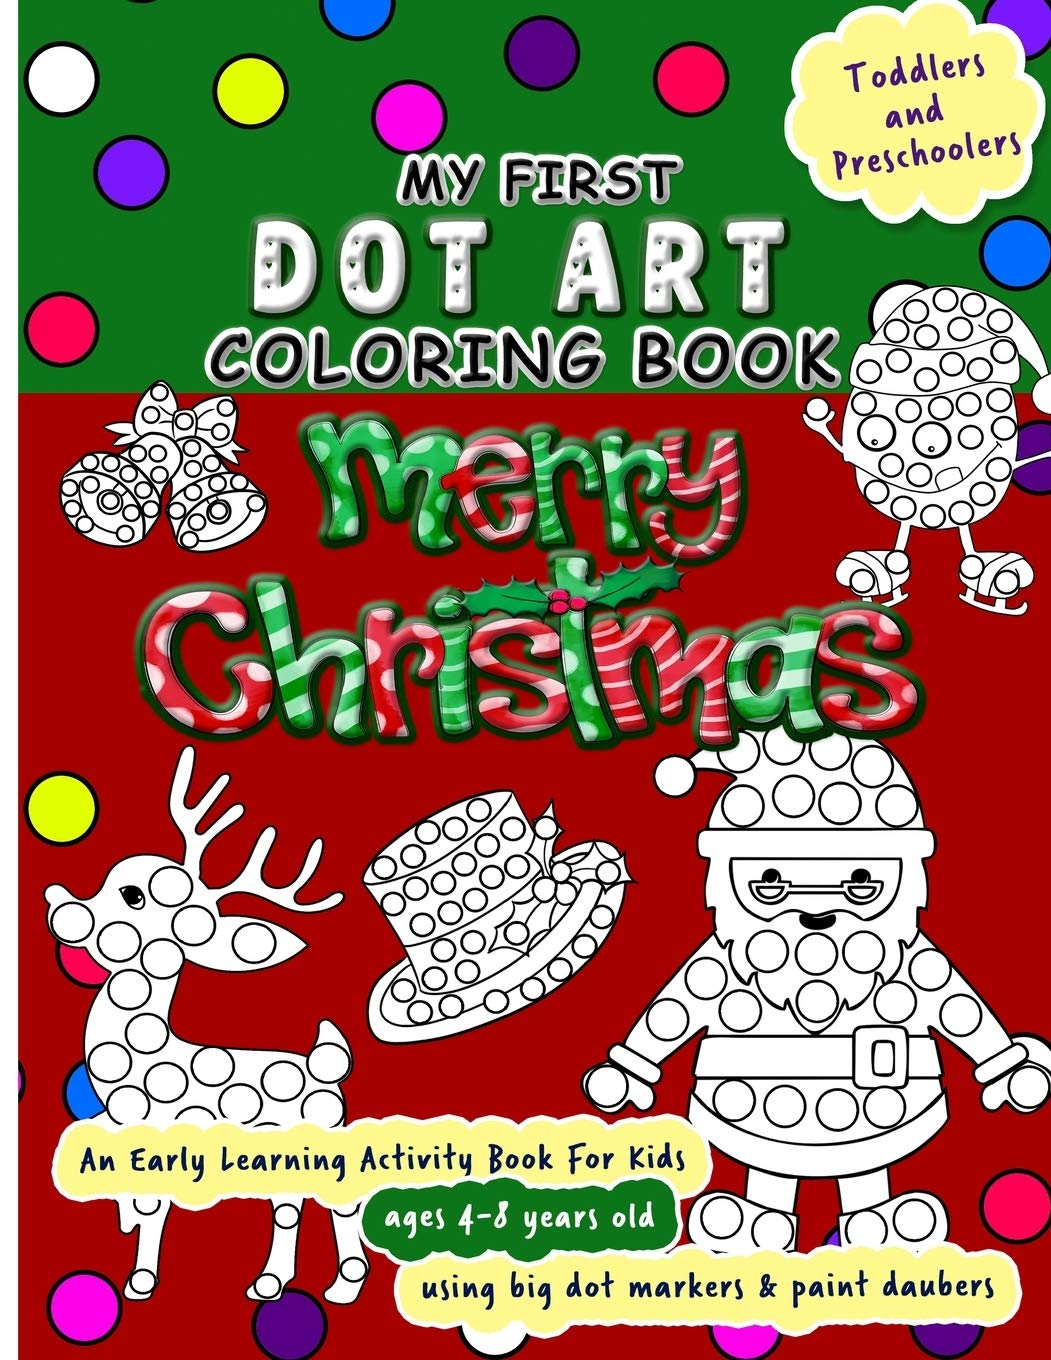 My First Dot Art Coloring Book Merry Christmas Do A Page A Day Of This Holiday Activity Book For Kids Ages 4 8 Years Using Big Dot Markers And Kids Dot